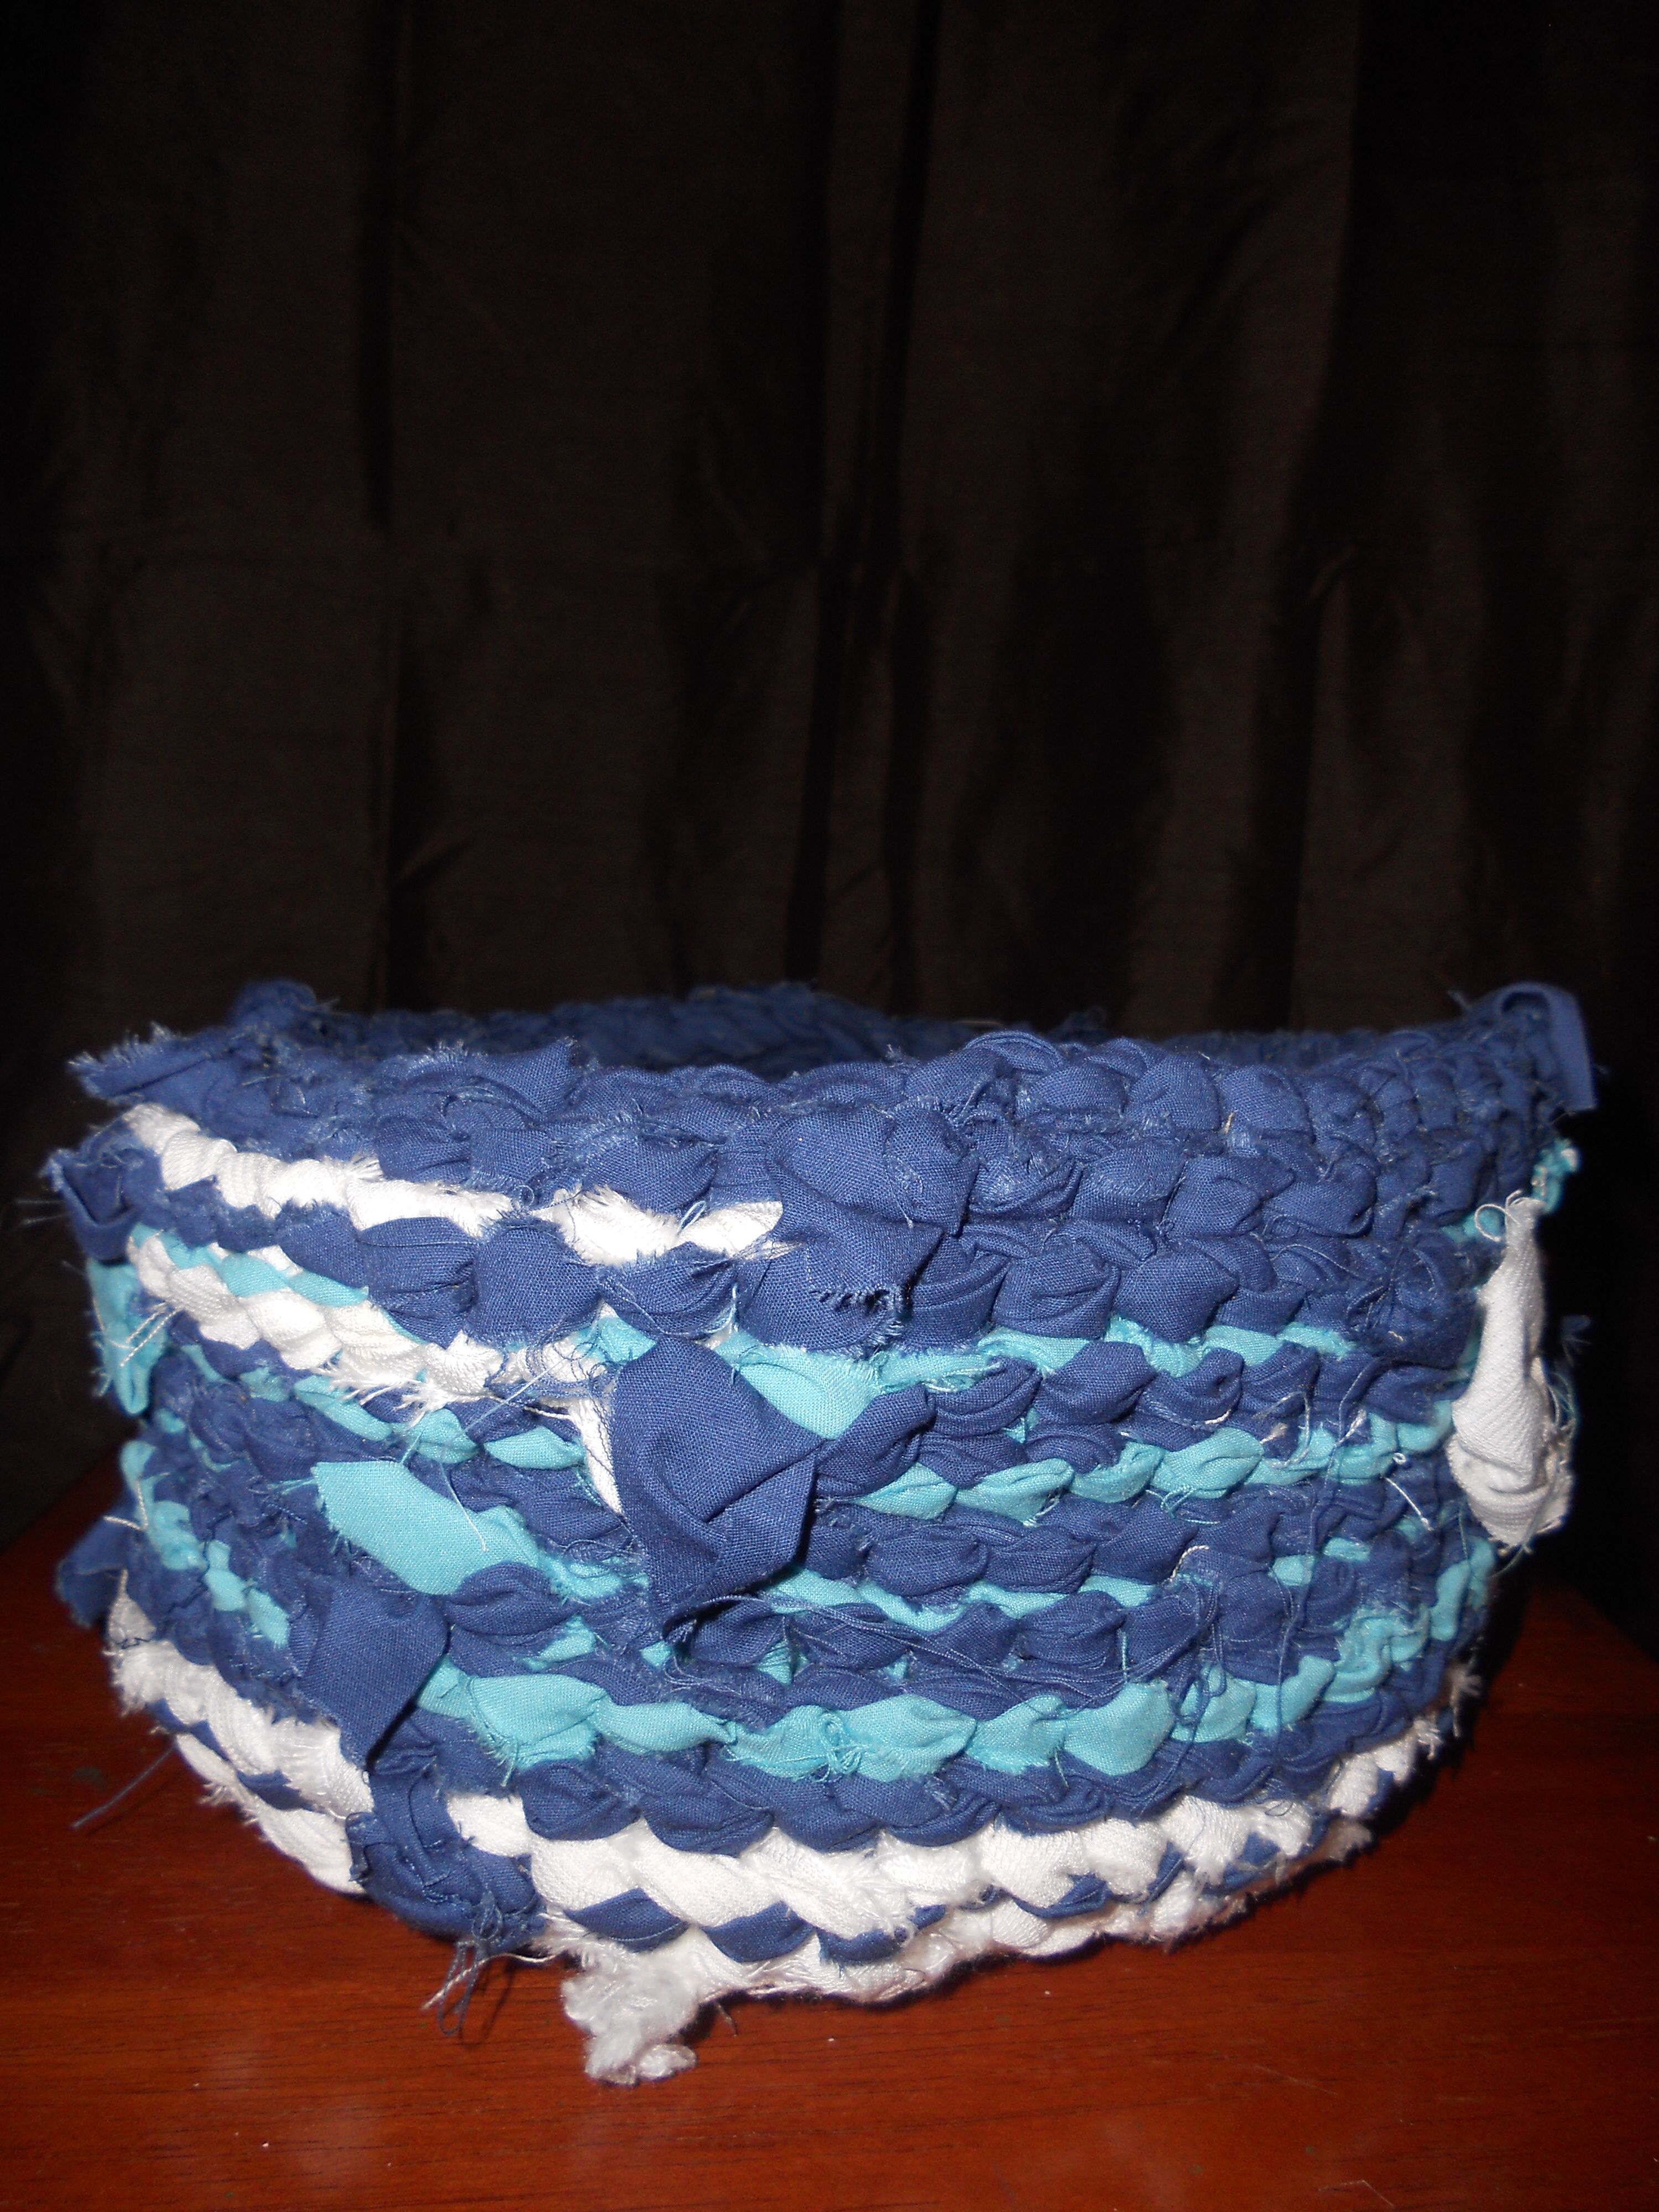 Casual large size casserole cover made from various cotton sheeting. Slight stretch in weave allows for easier on/off maneuvering.